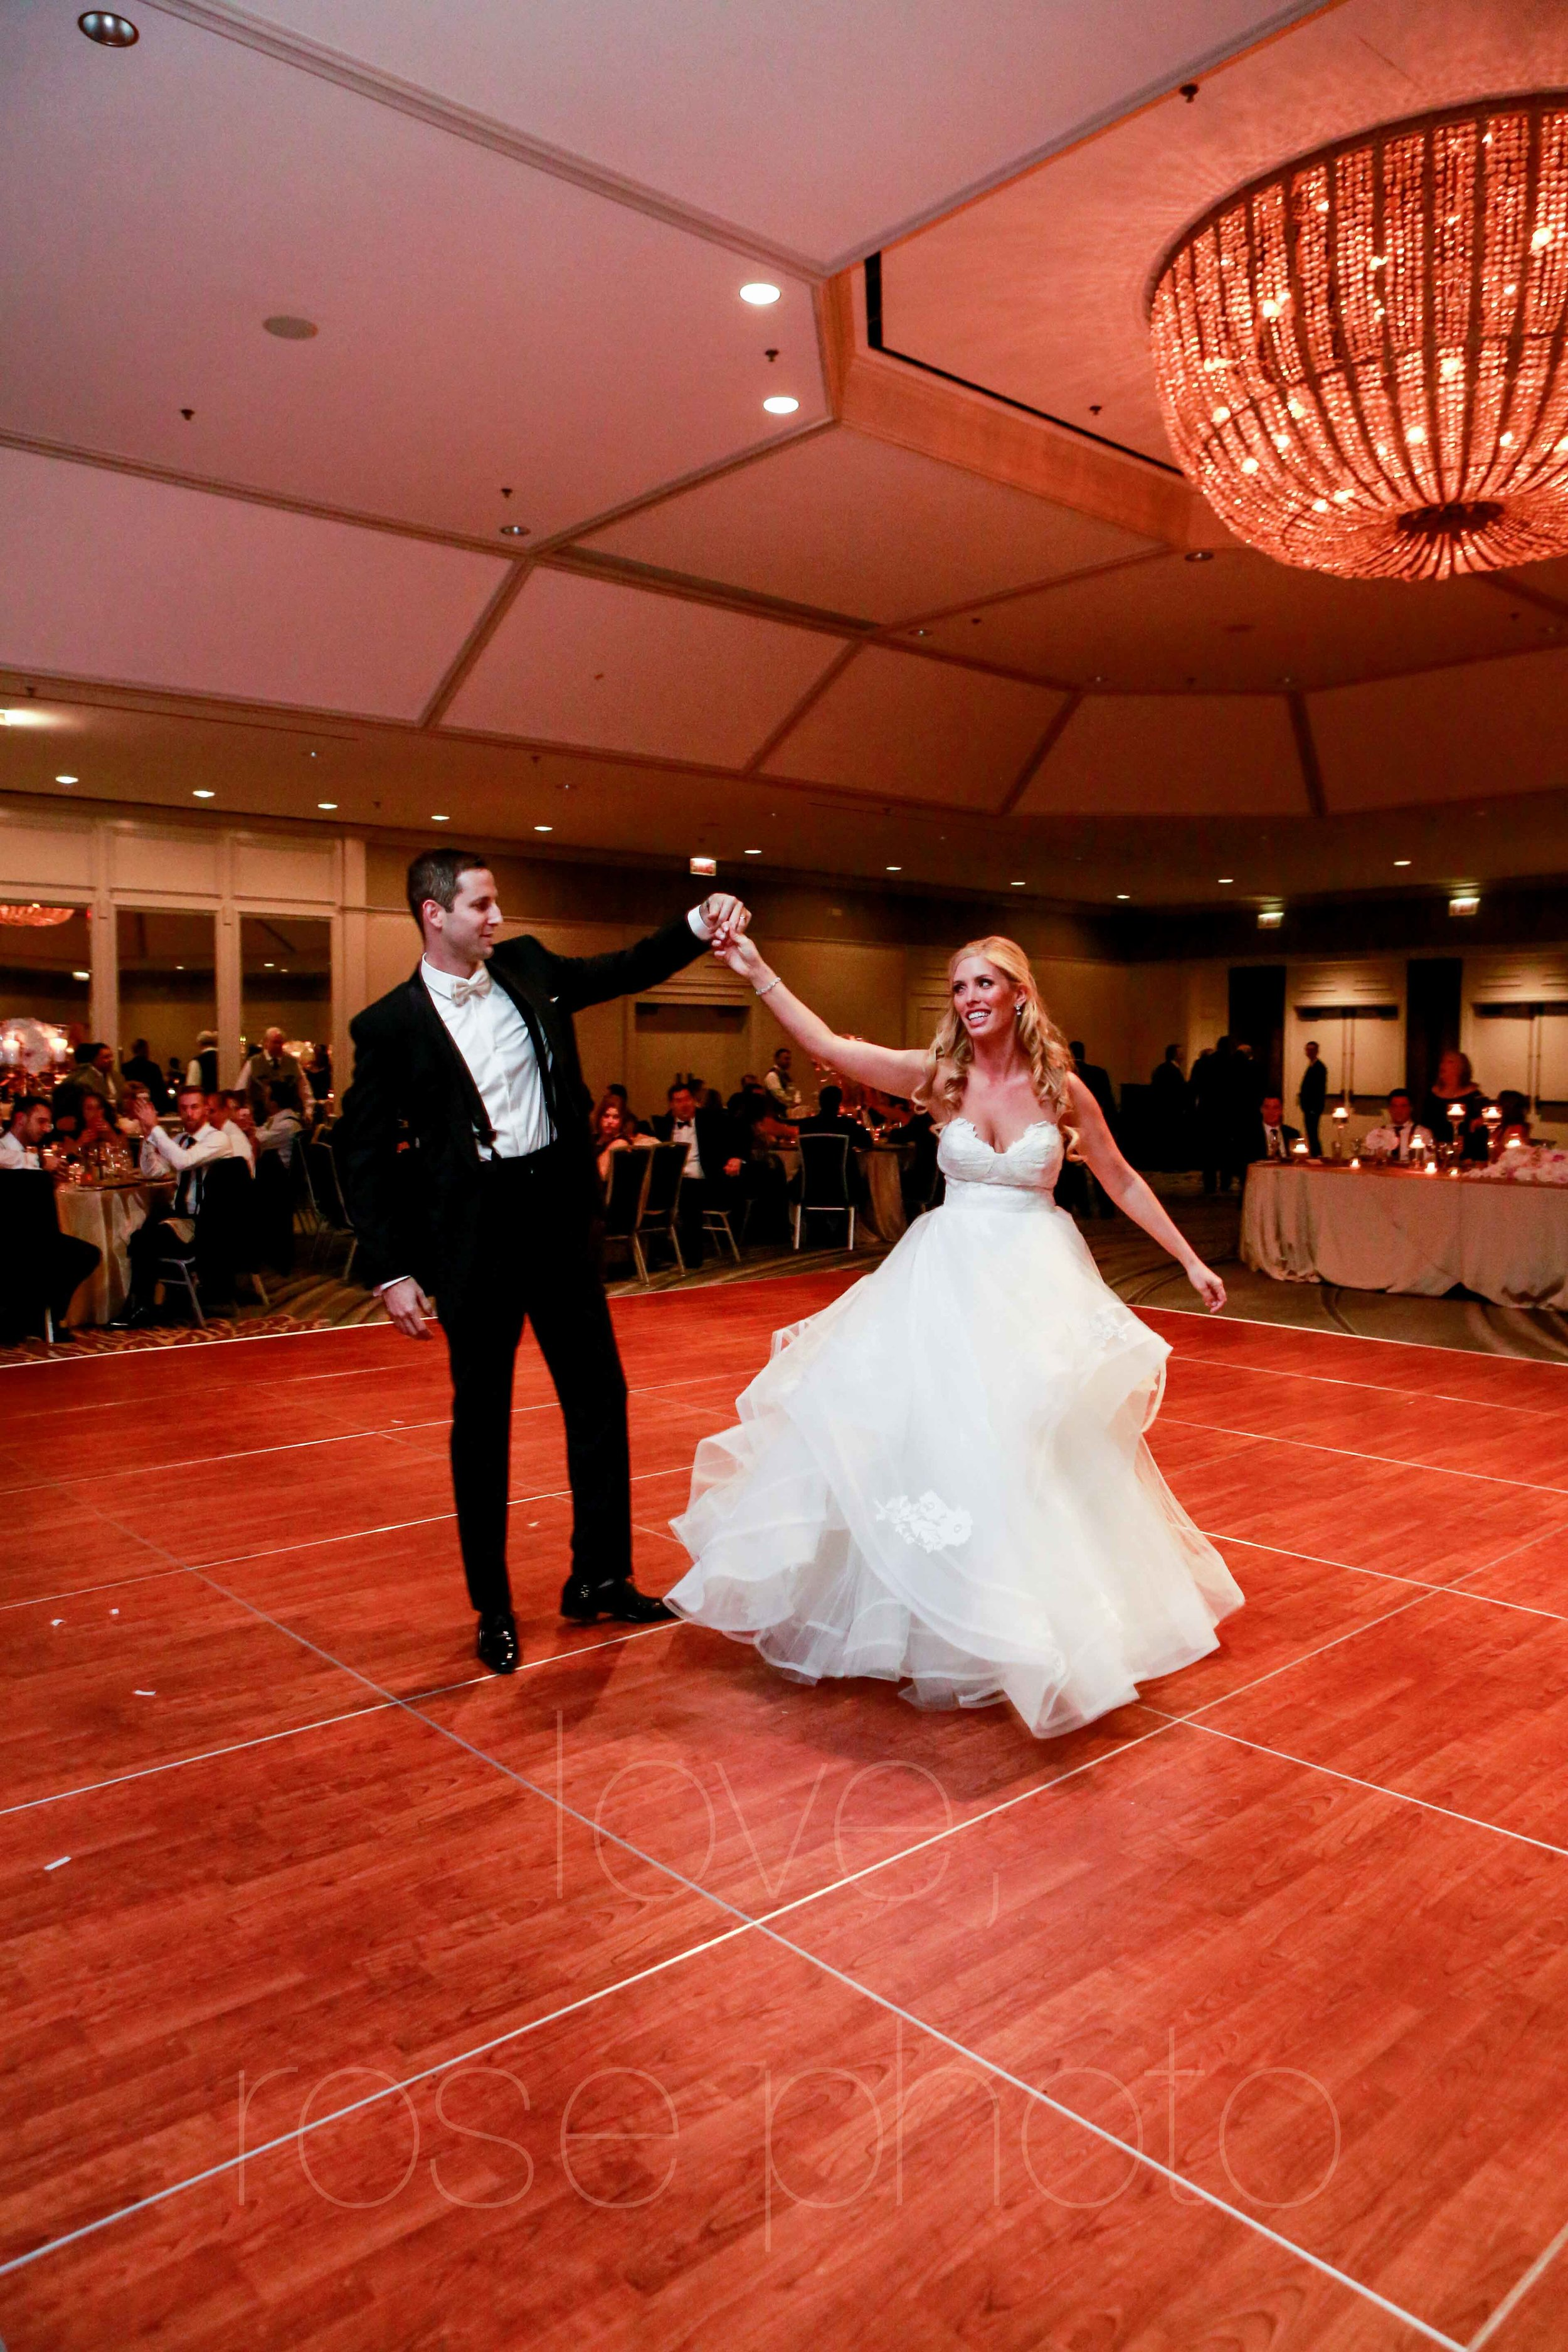 Rose Photo downtown Chicago wedding mag mile new years eve best wedding photography-49.jpg